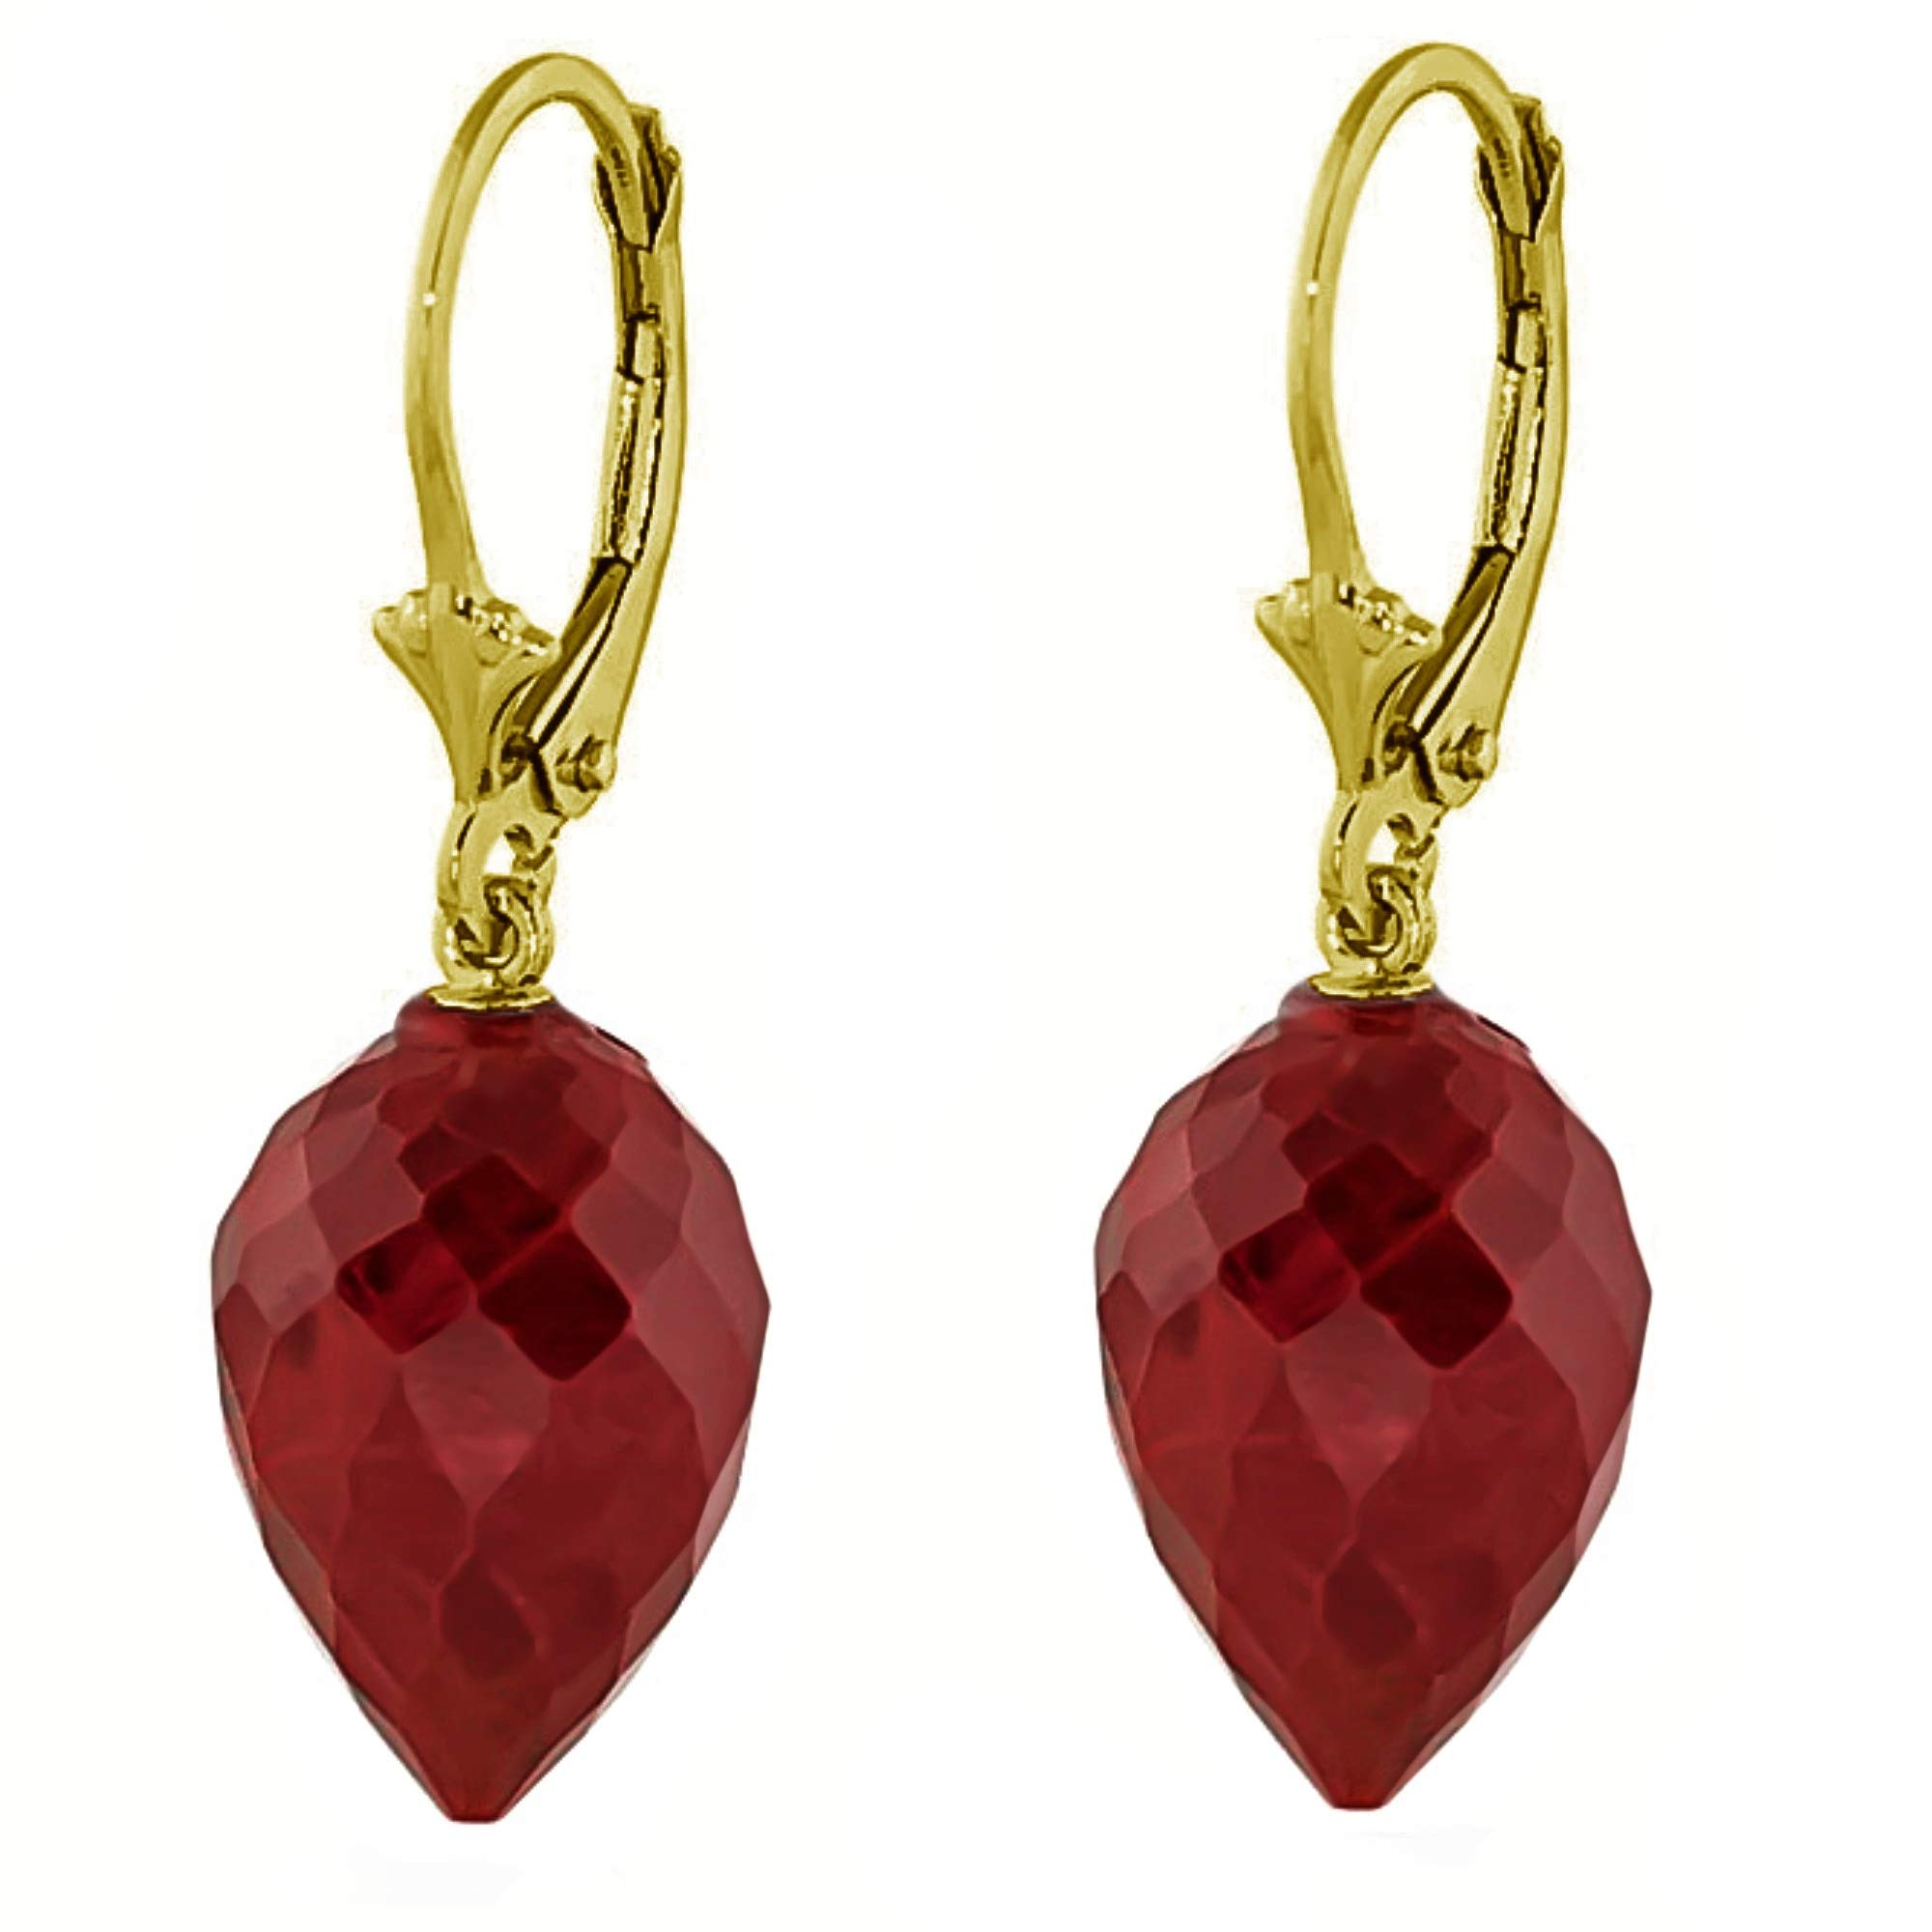 Galaxy Gold 14k Solid Yellow Gold Leverback Earrings with Drop Briolette Natural Rubies